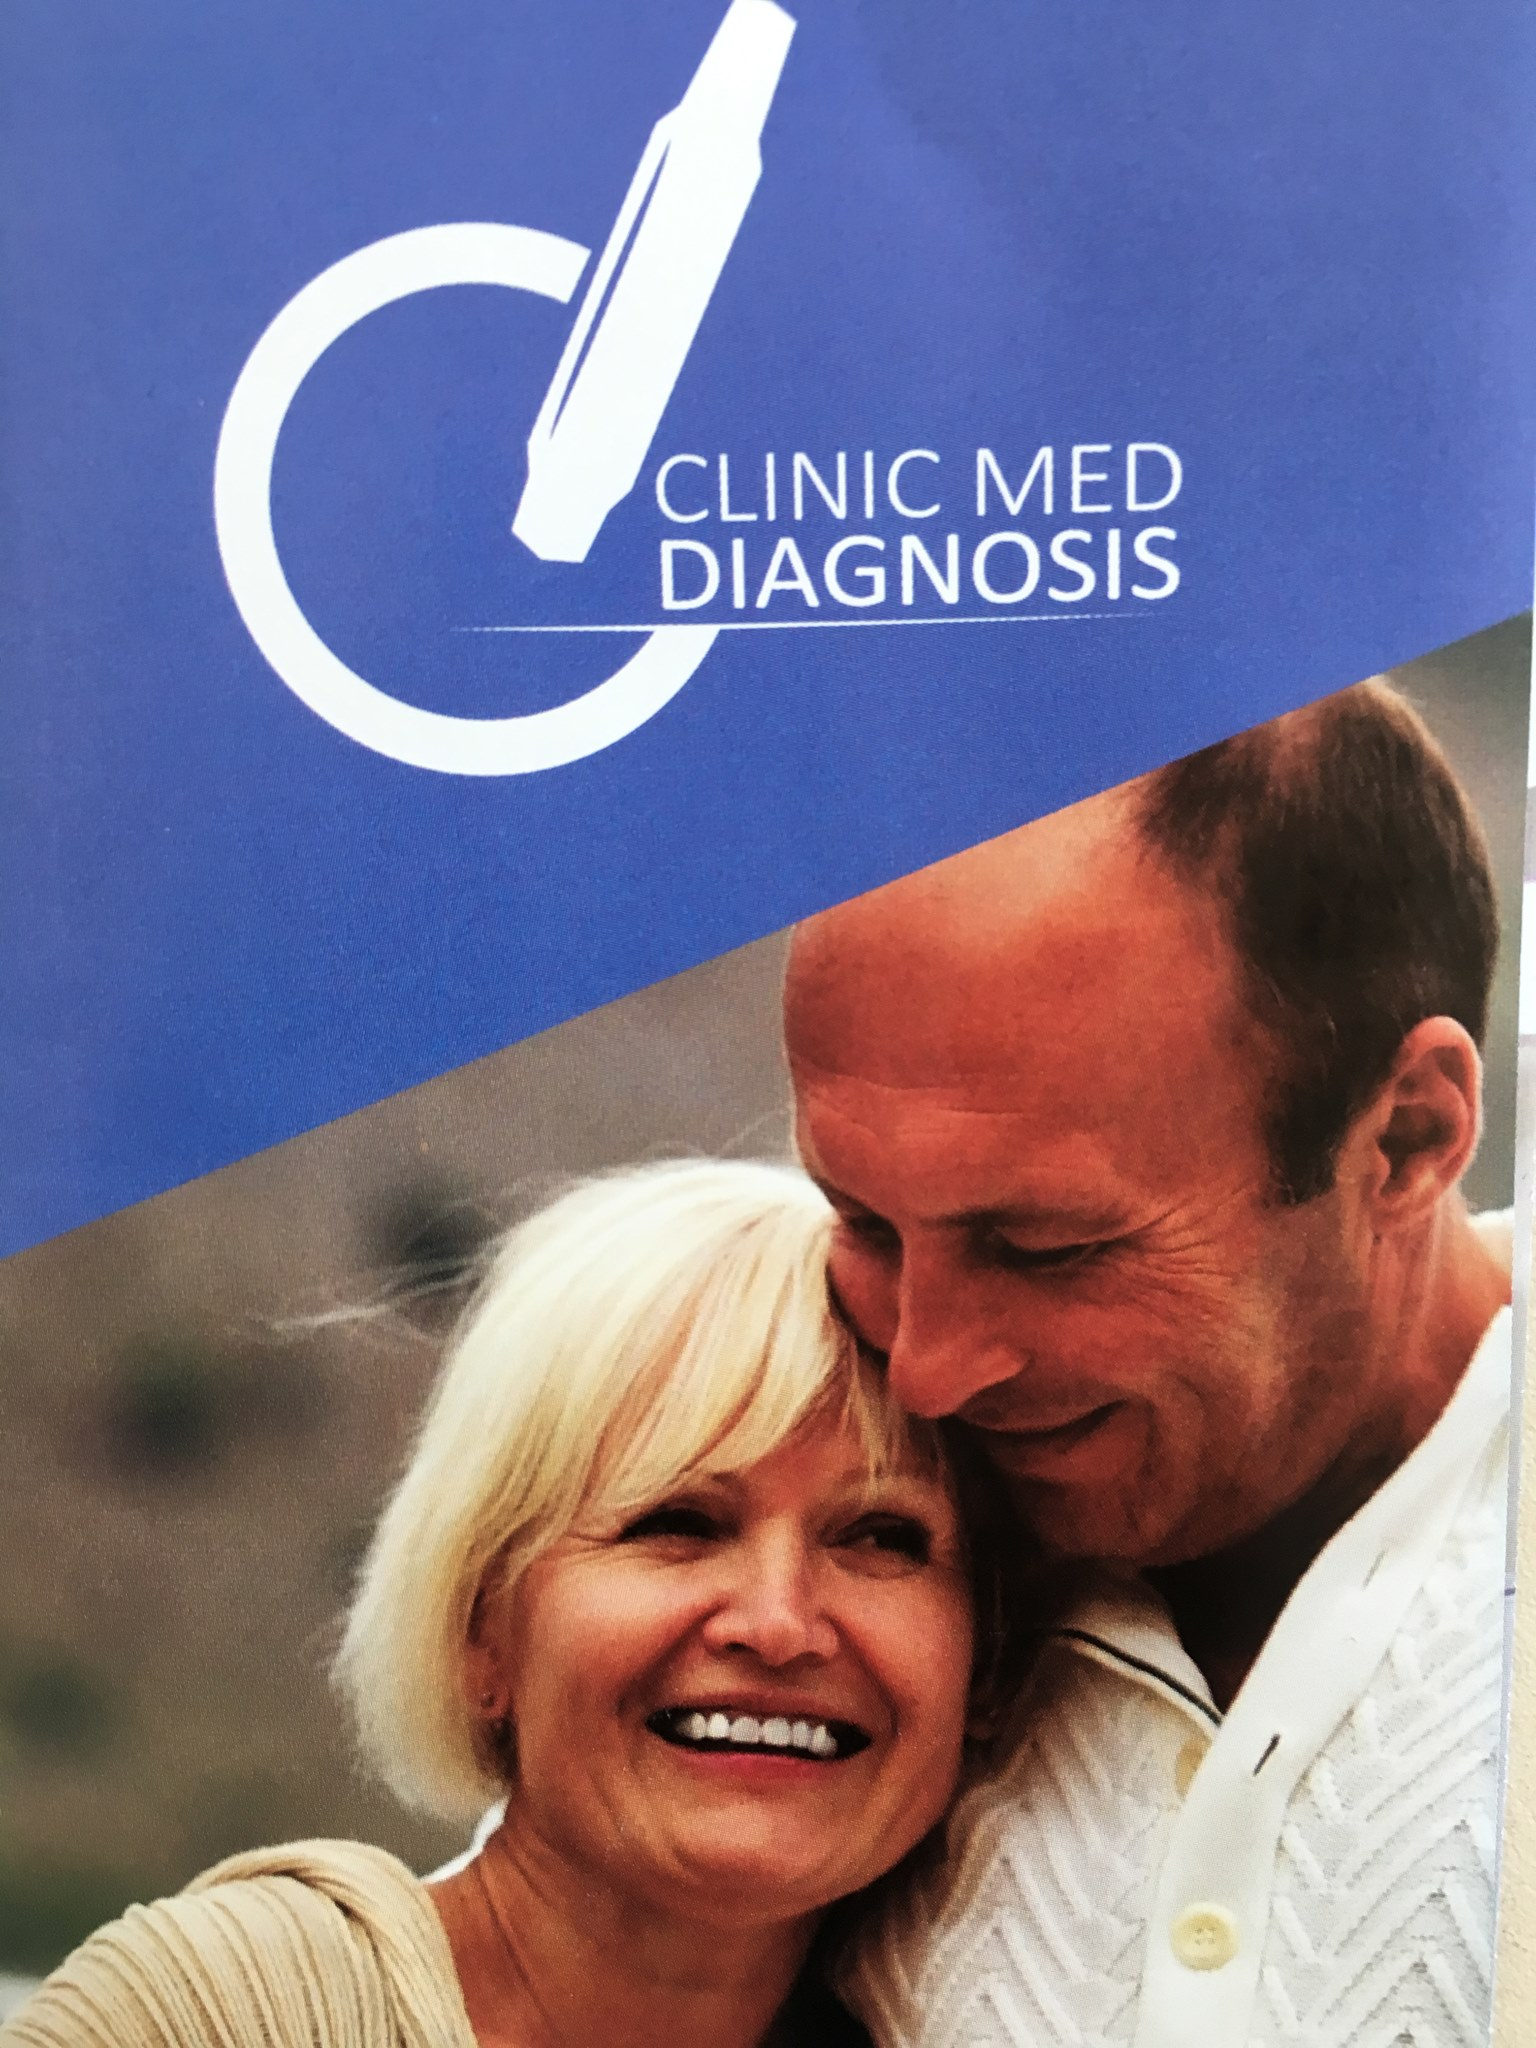 Analize Laborator Clinic Med Diagnosis - Cluj